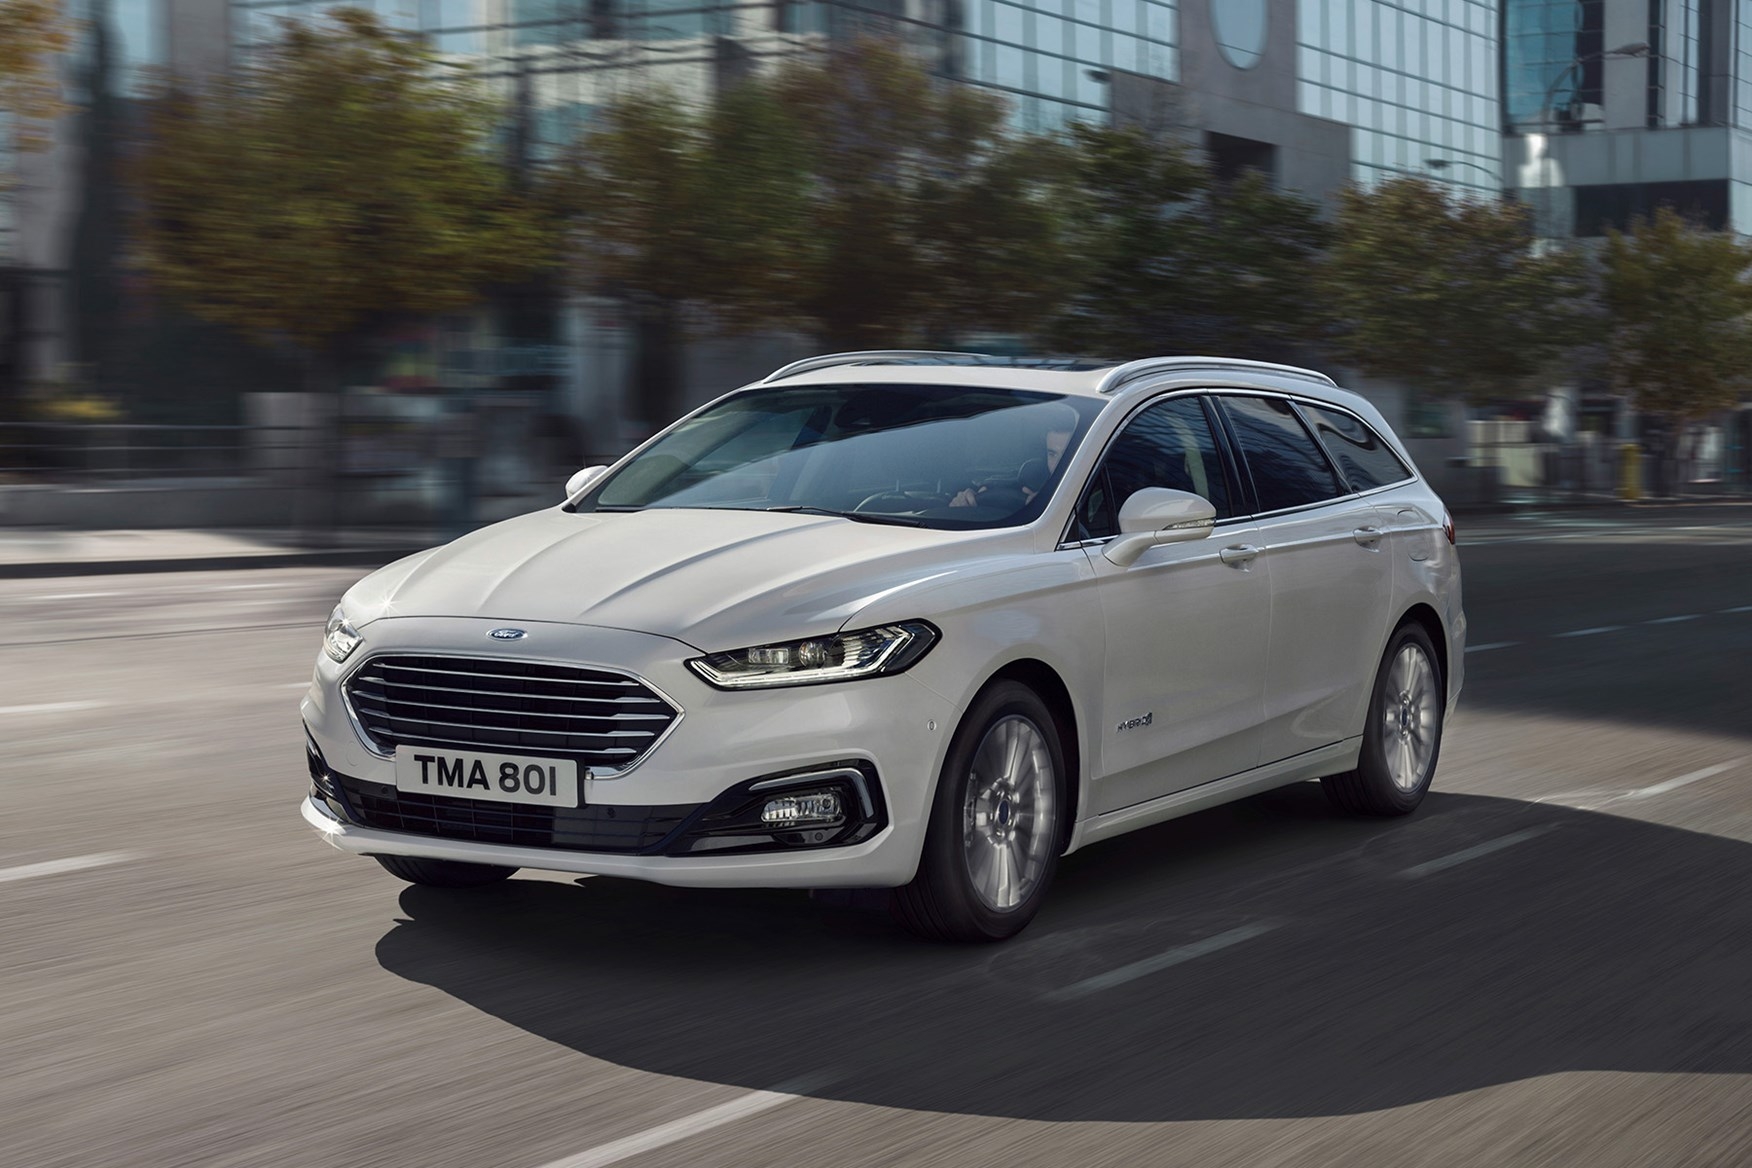 Refreshed 2019 Ford Mondeo Revised Looks And Greater Hybrid Appeal